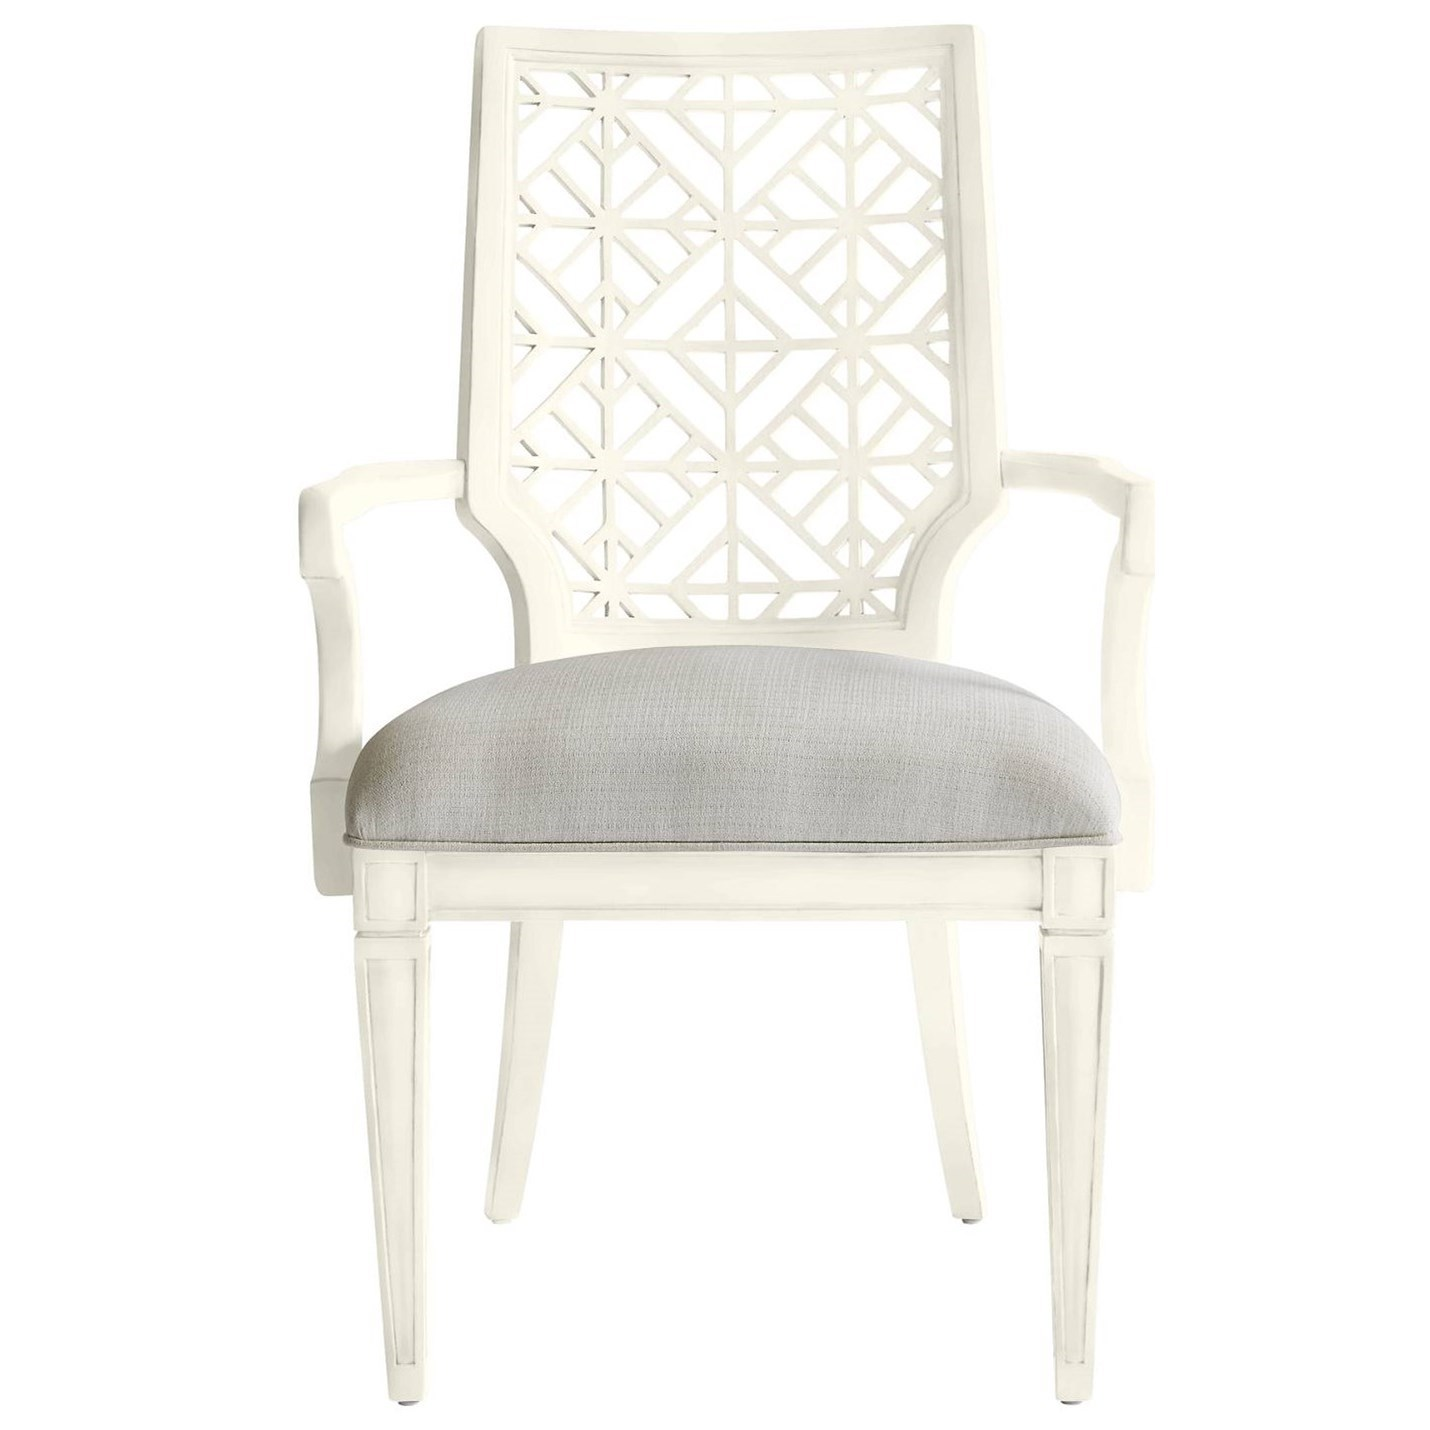 Stanley Furniture Coastal Living Oasis Catalina Arm Chair - Item Number: 527-21-70